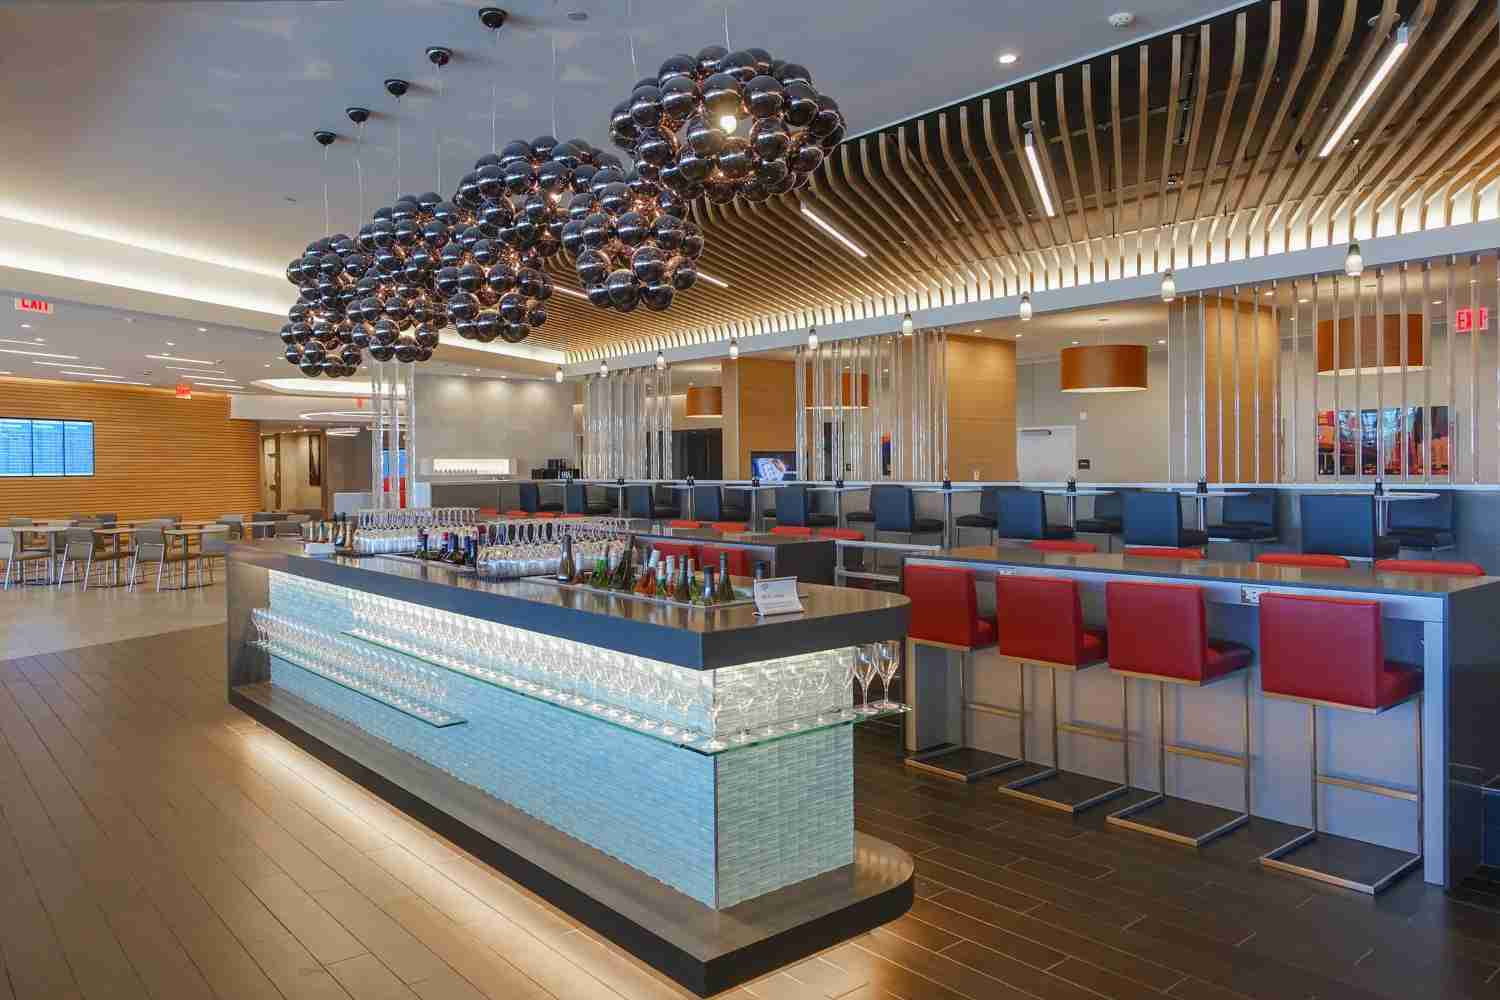 Image of the New York JFK Flagship Lounge courtesy of American Airlines.